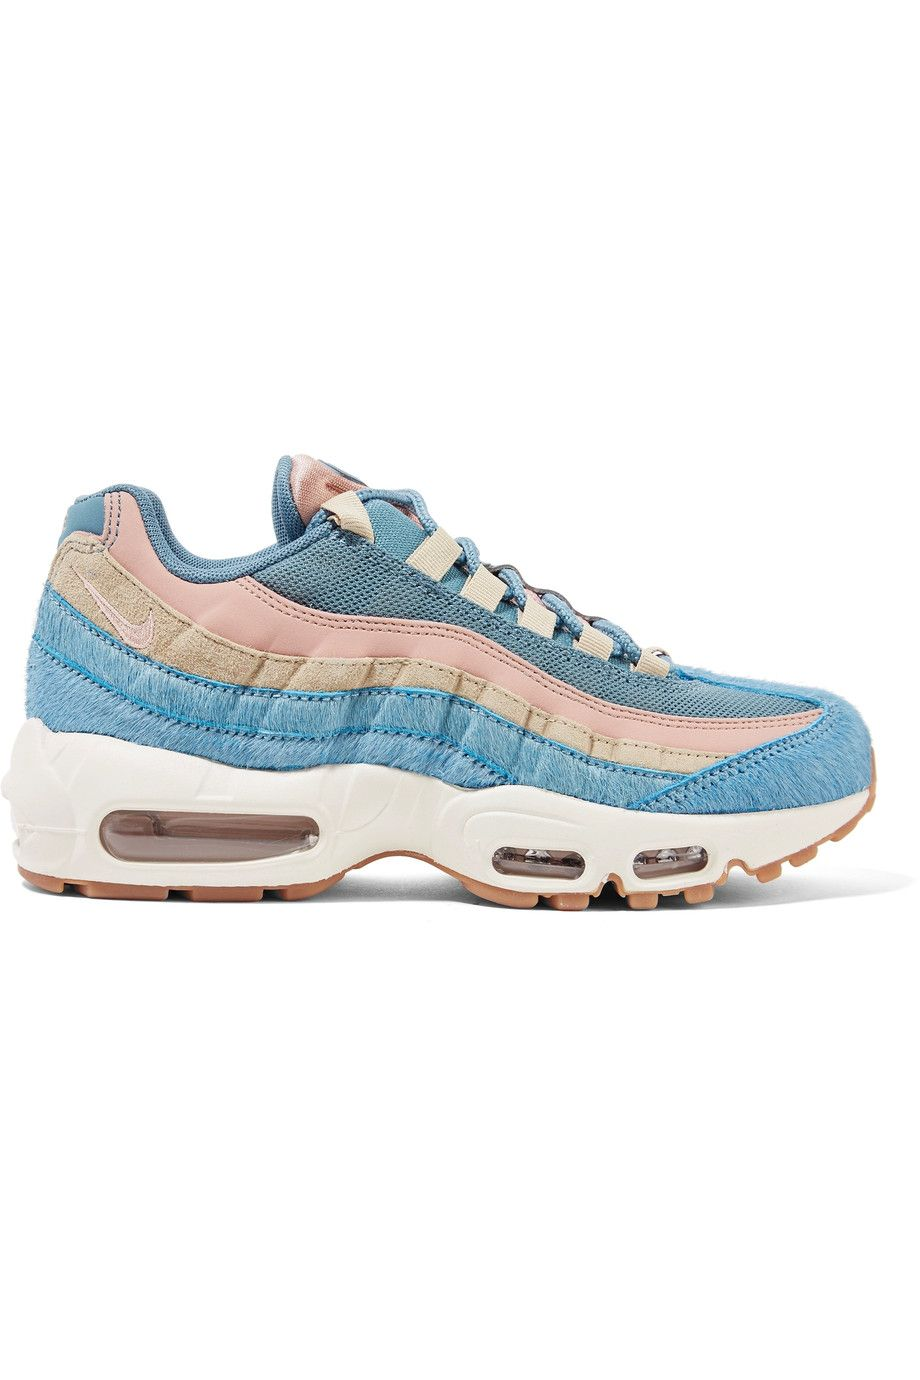 save off 7ca4a 6534c Nike   Air Max 95 calf hair, suede and mesh sneakers   NET-A-PORTER.COM